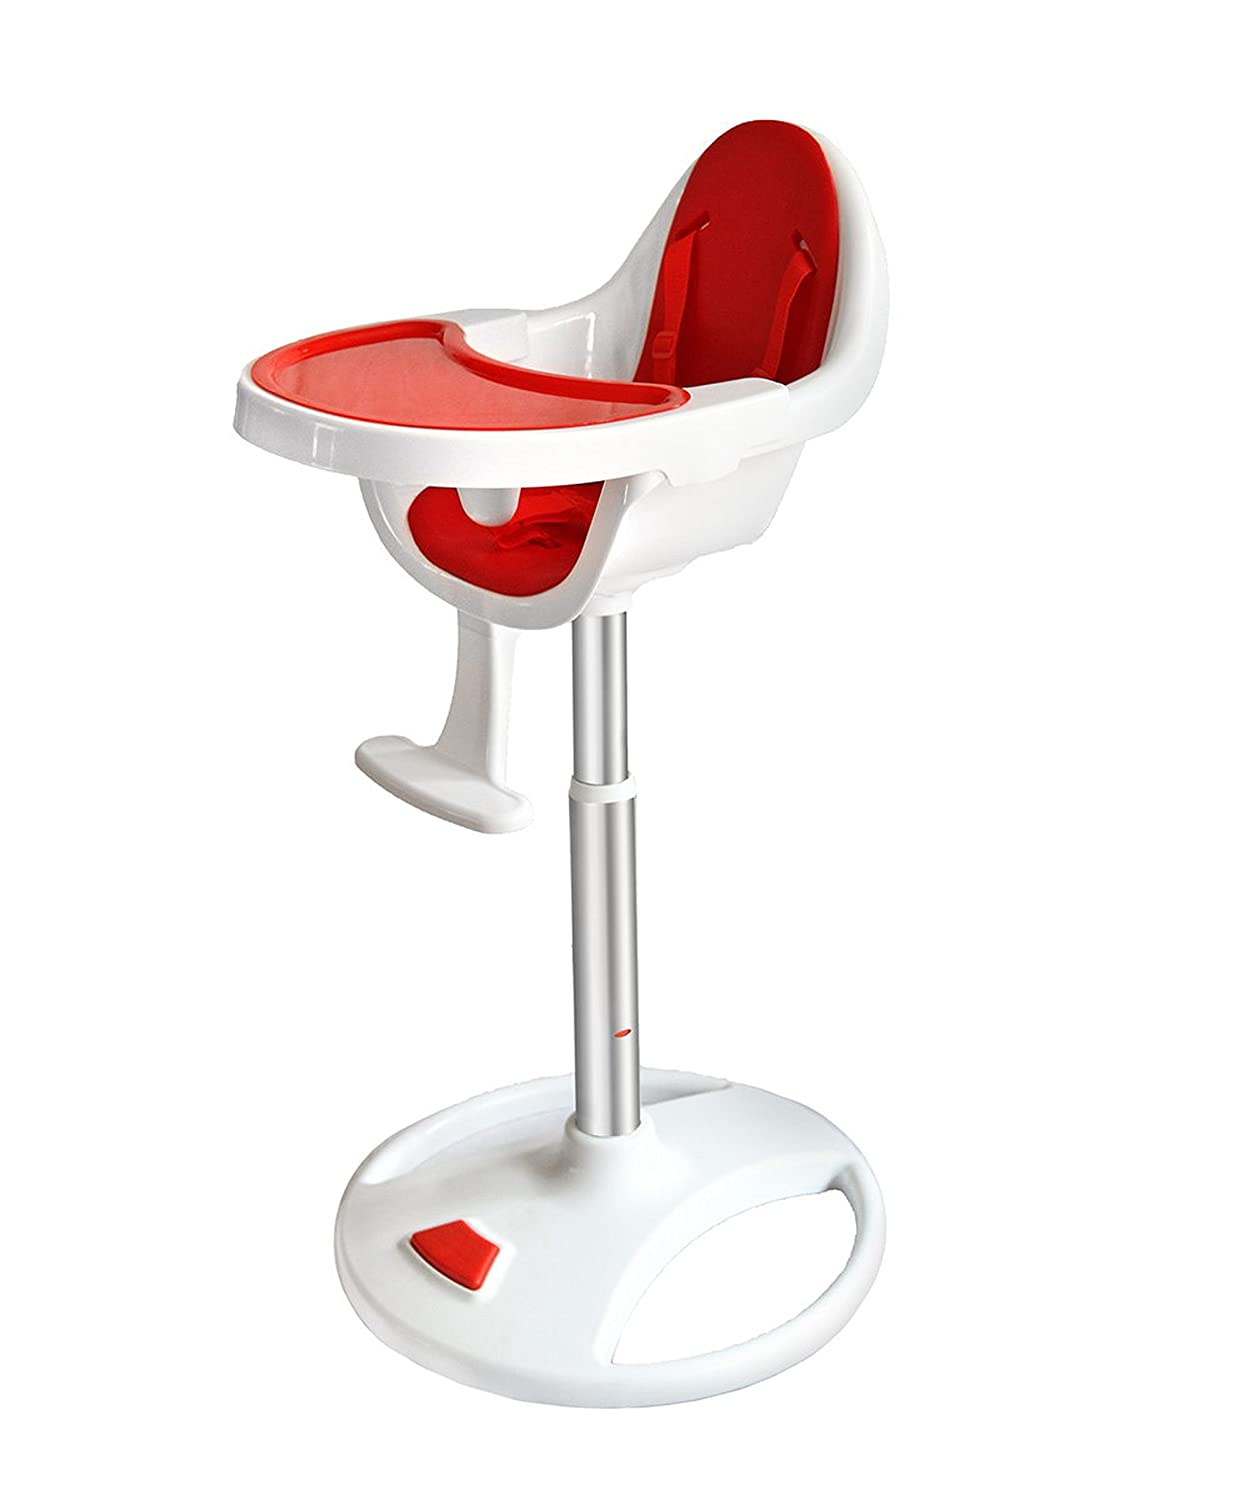 Bebe Style Modern Swivel 360 Degree Pedestal Highchair (Red) - 2018 SCH72R